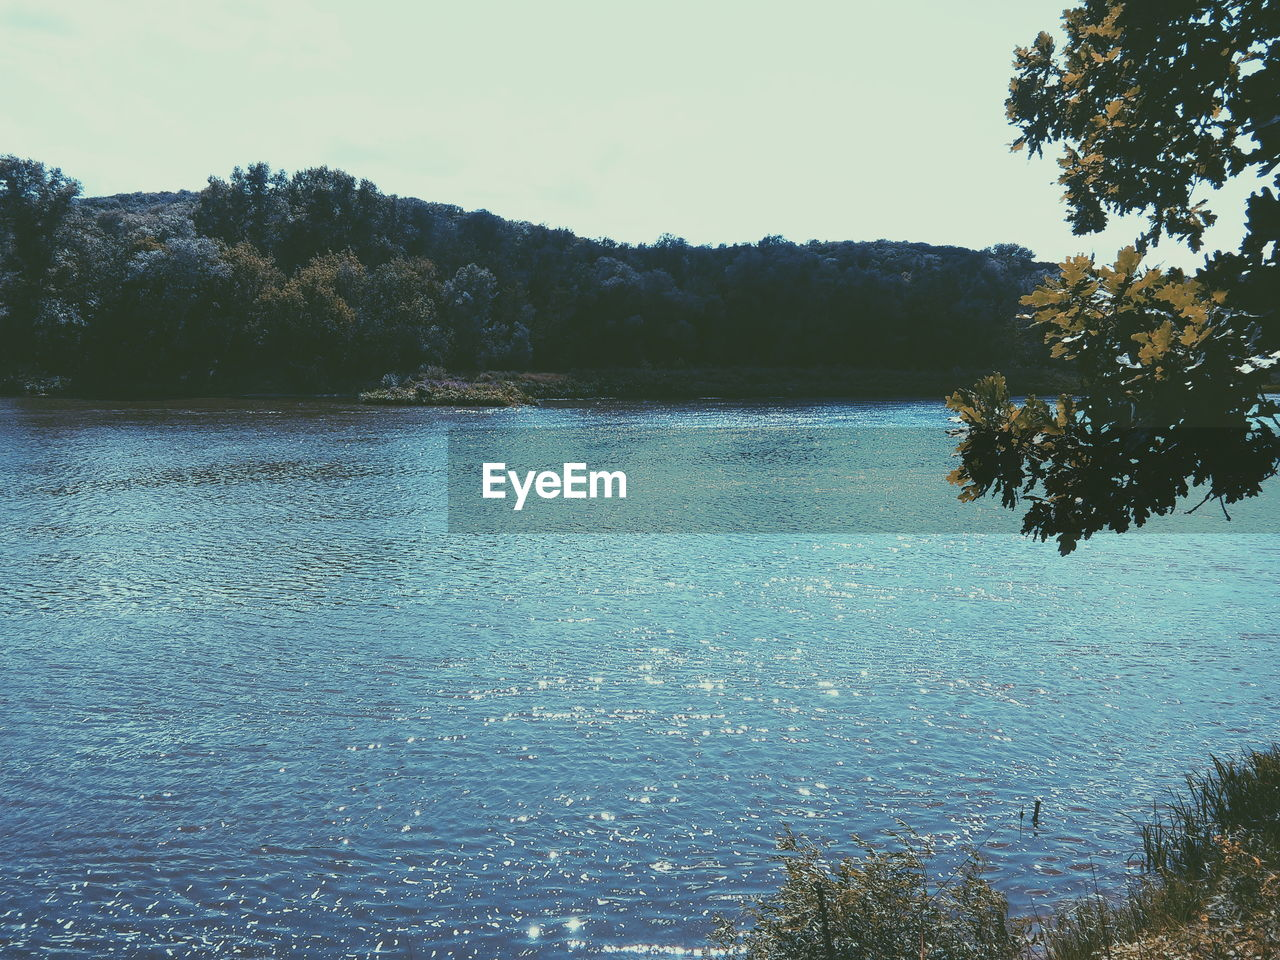 water, nature, tranquility, tree, beauty in nature, scenics, tranquil scene, no people, outdoors, sea, forest, day, sky